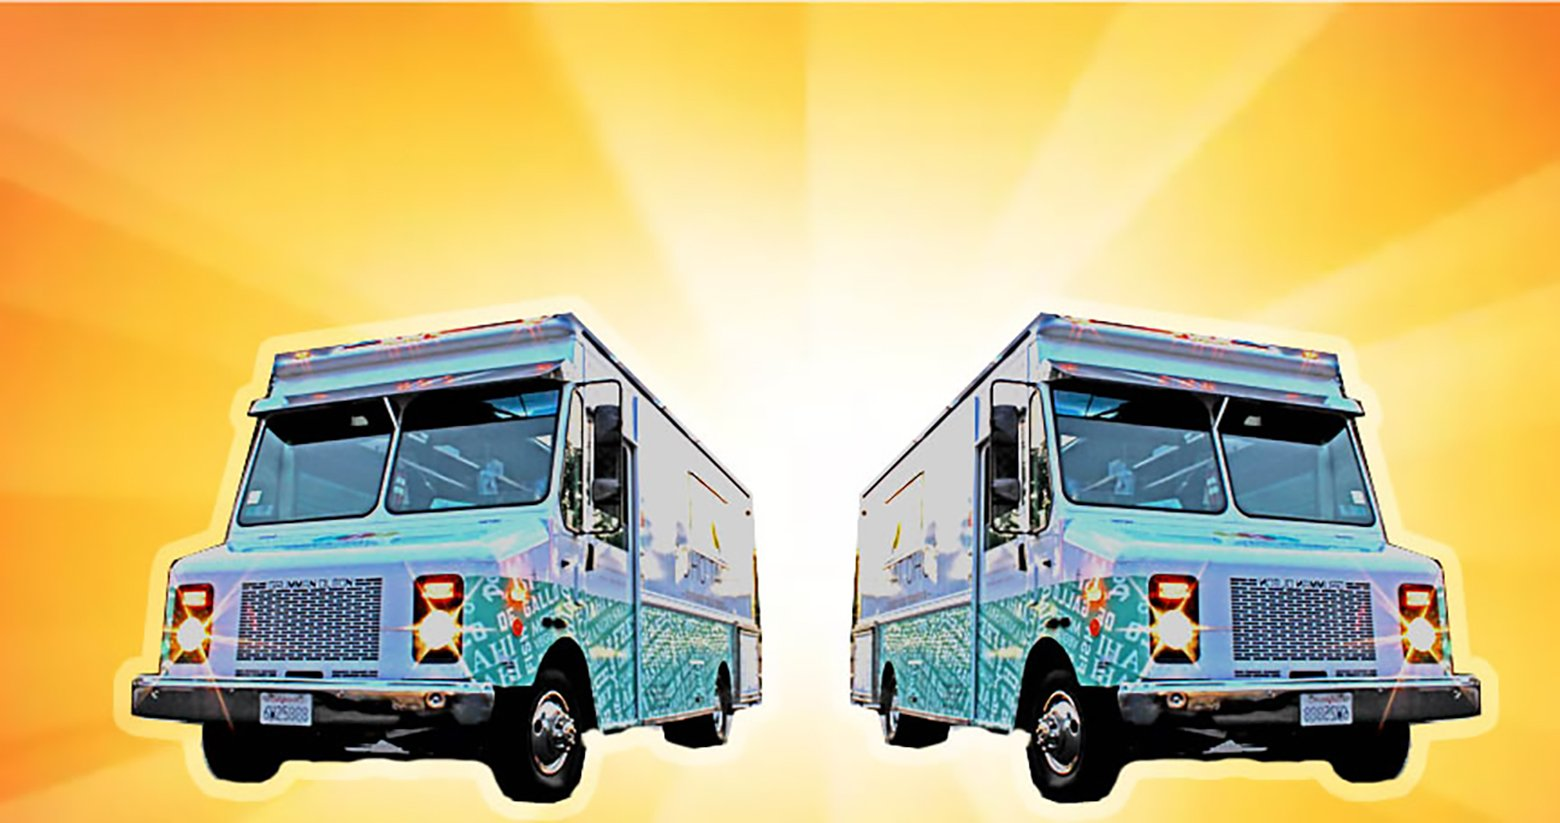 utah-foodtruck-coop-background_larger